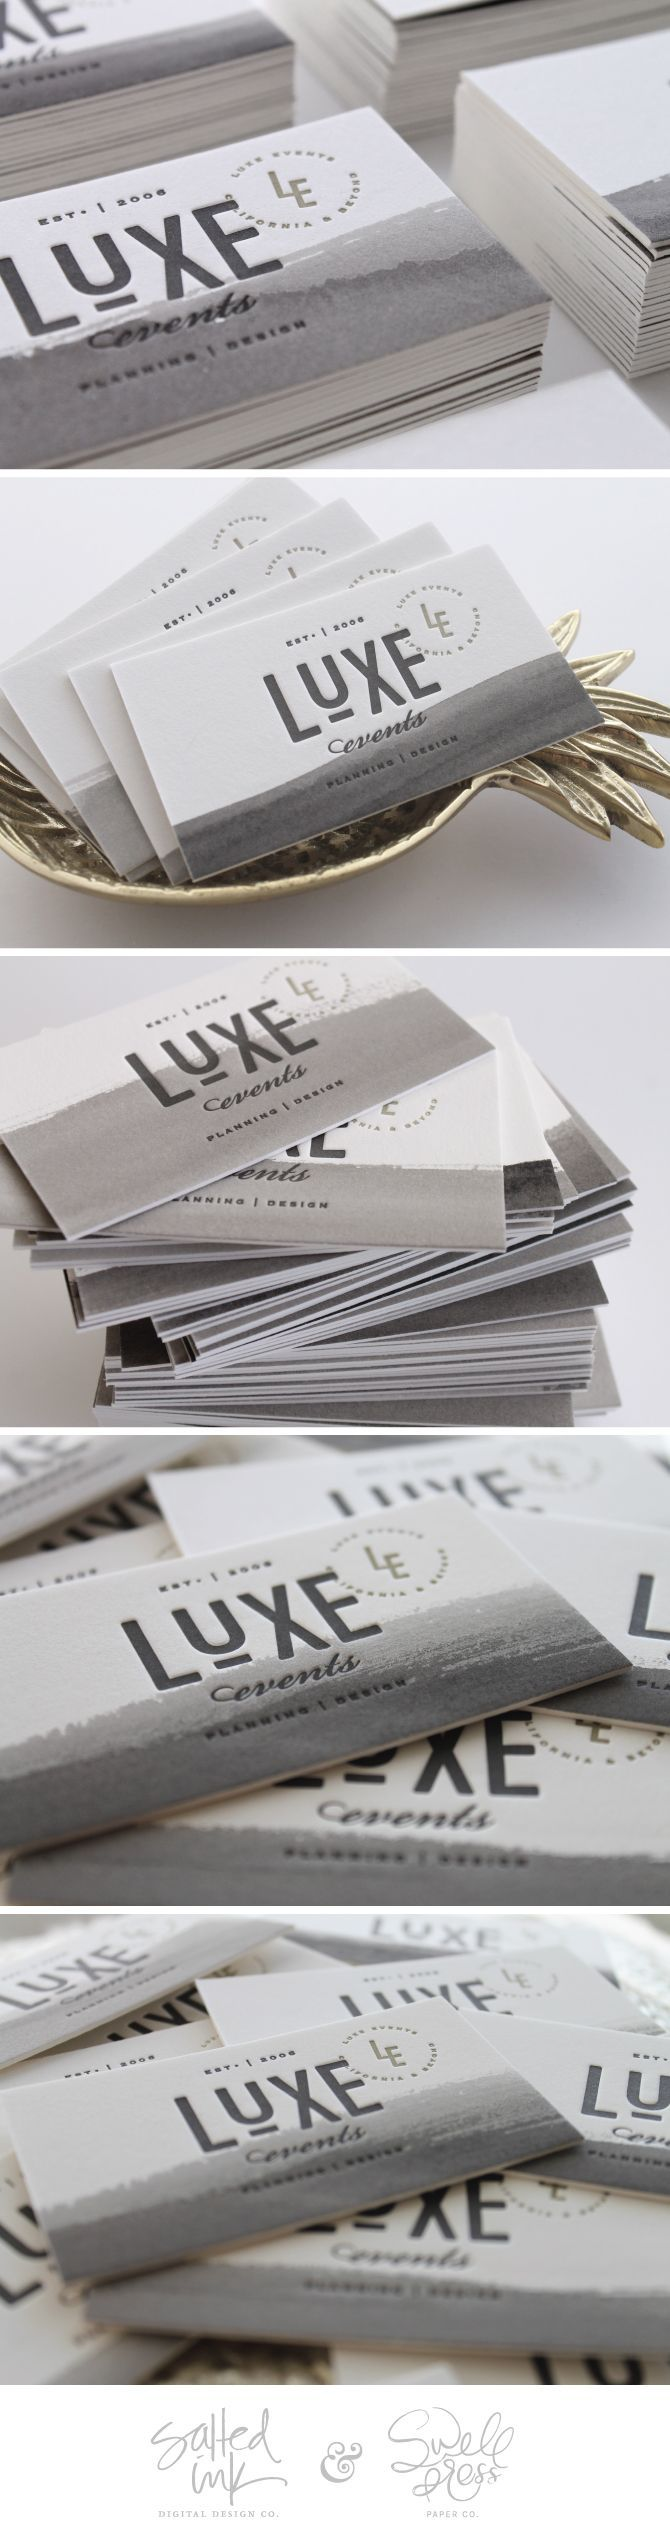 867 Best Business Card Designs Images On Pinterest Business Cards